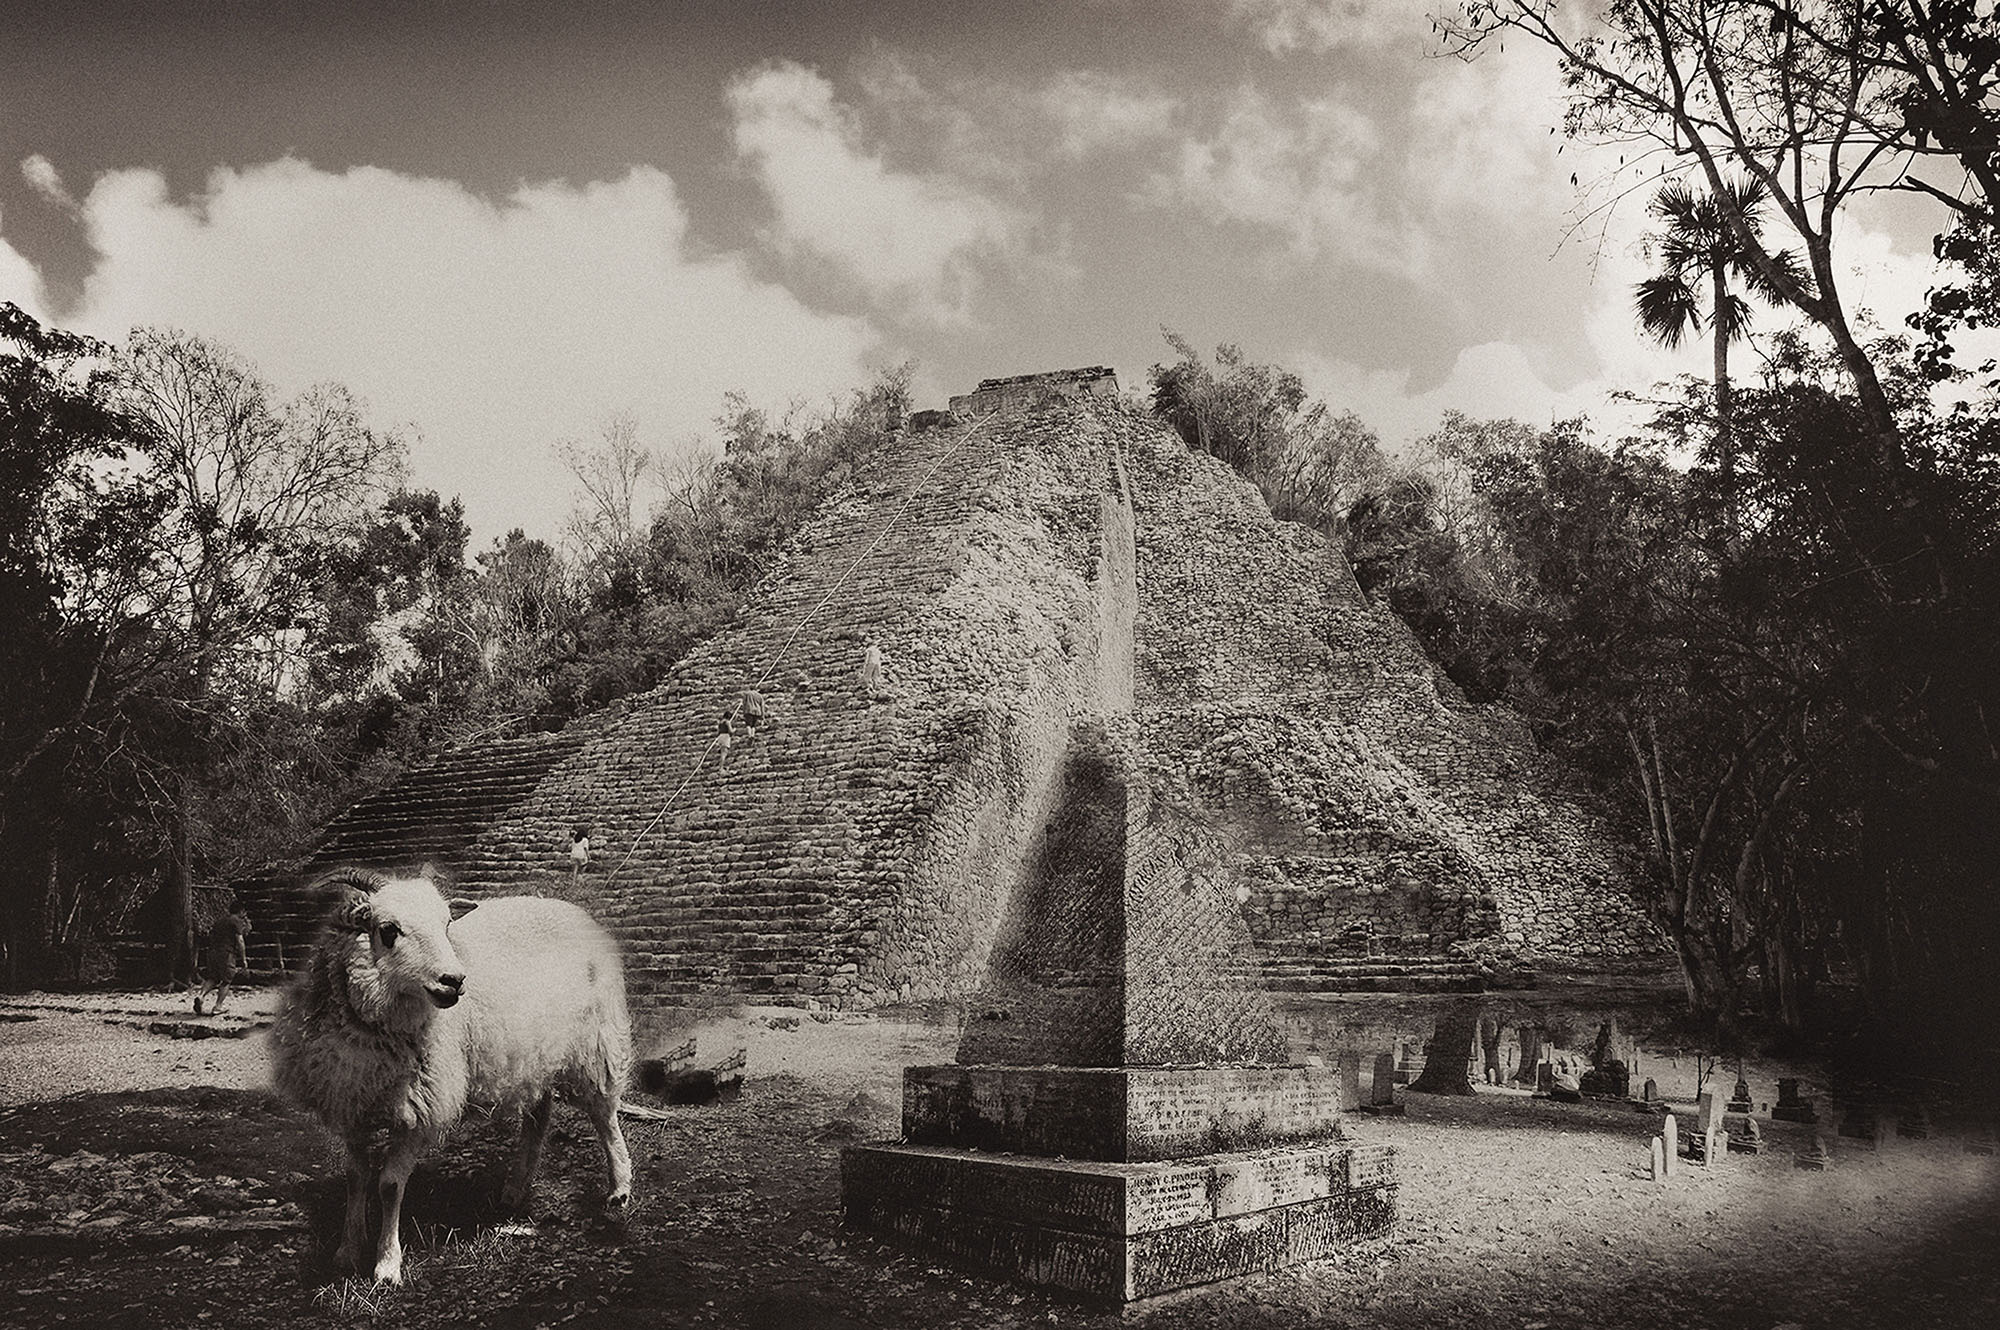 """Pyramid"" by Marcia Hopkins, 17x22in, digital archival print (2017), $500 